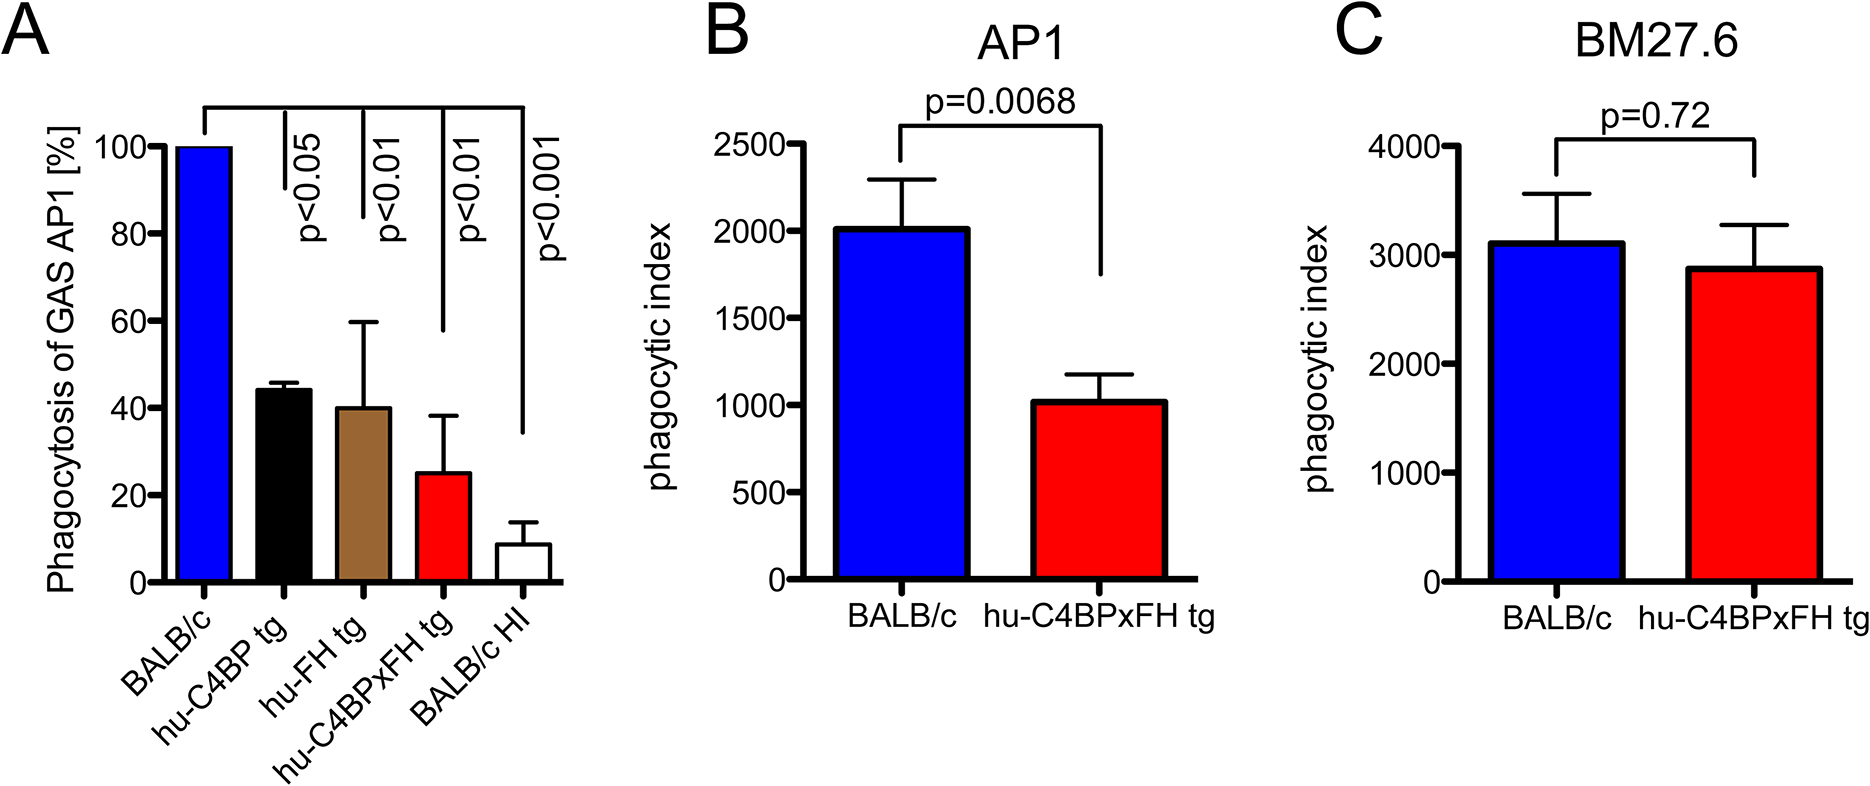 Phagocytosis of GAS AP1 is reduced in the presence of hu-C4BP and hu-FH.